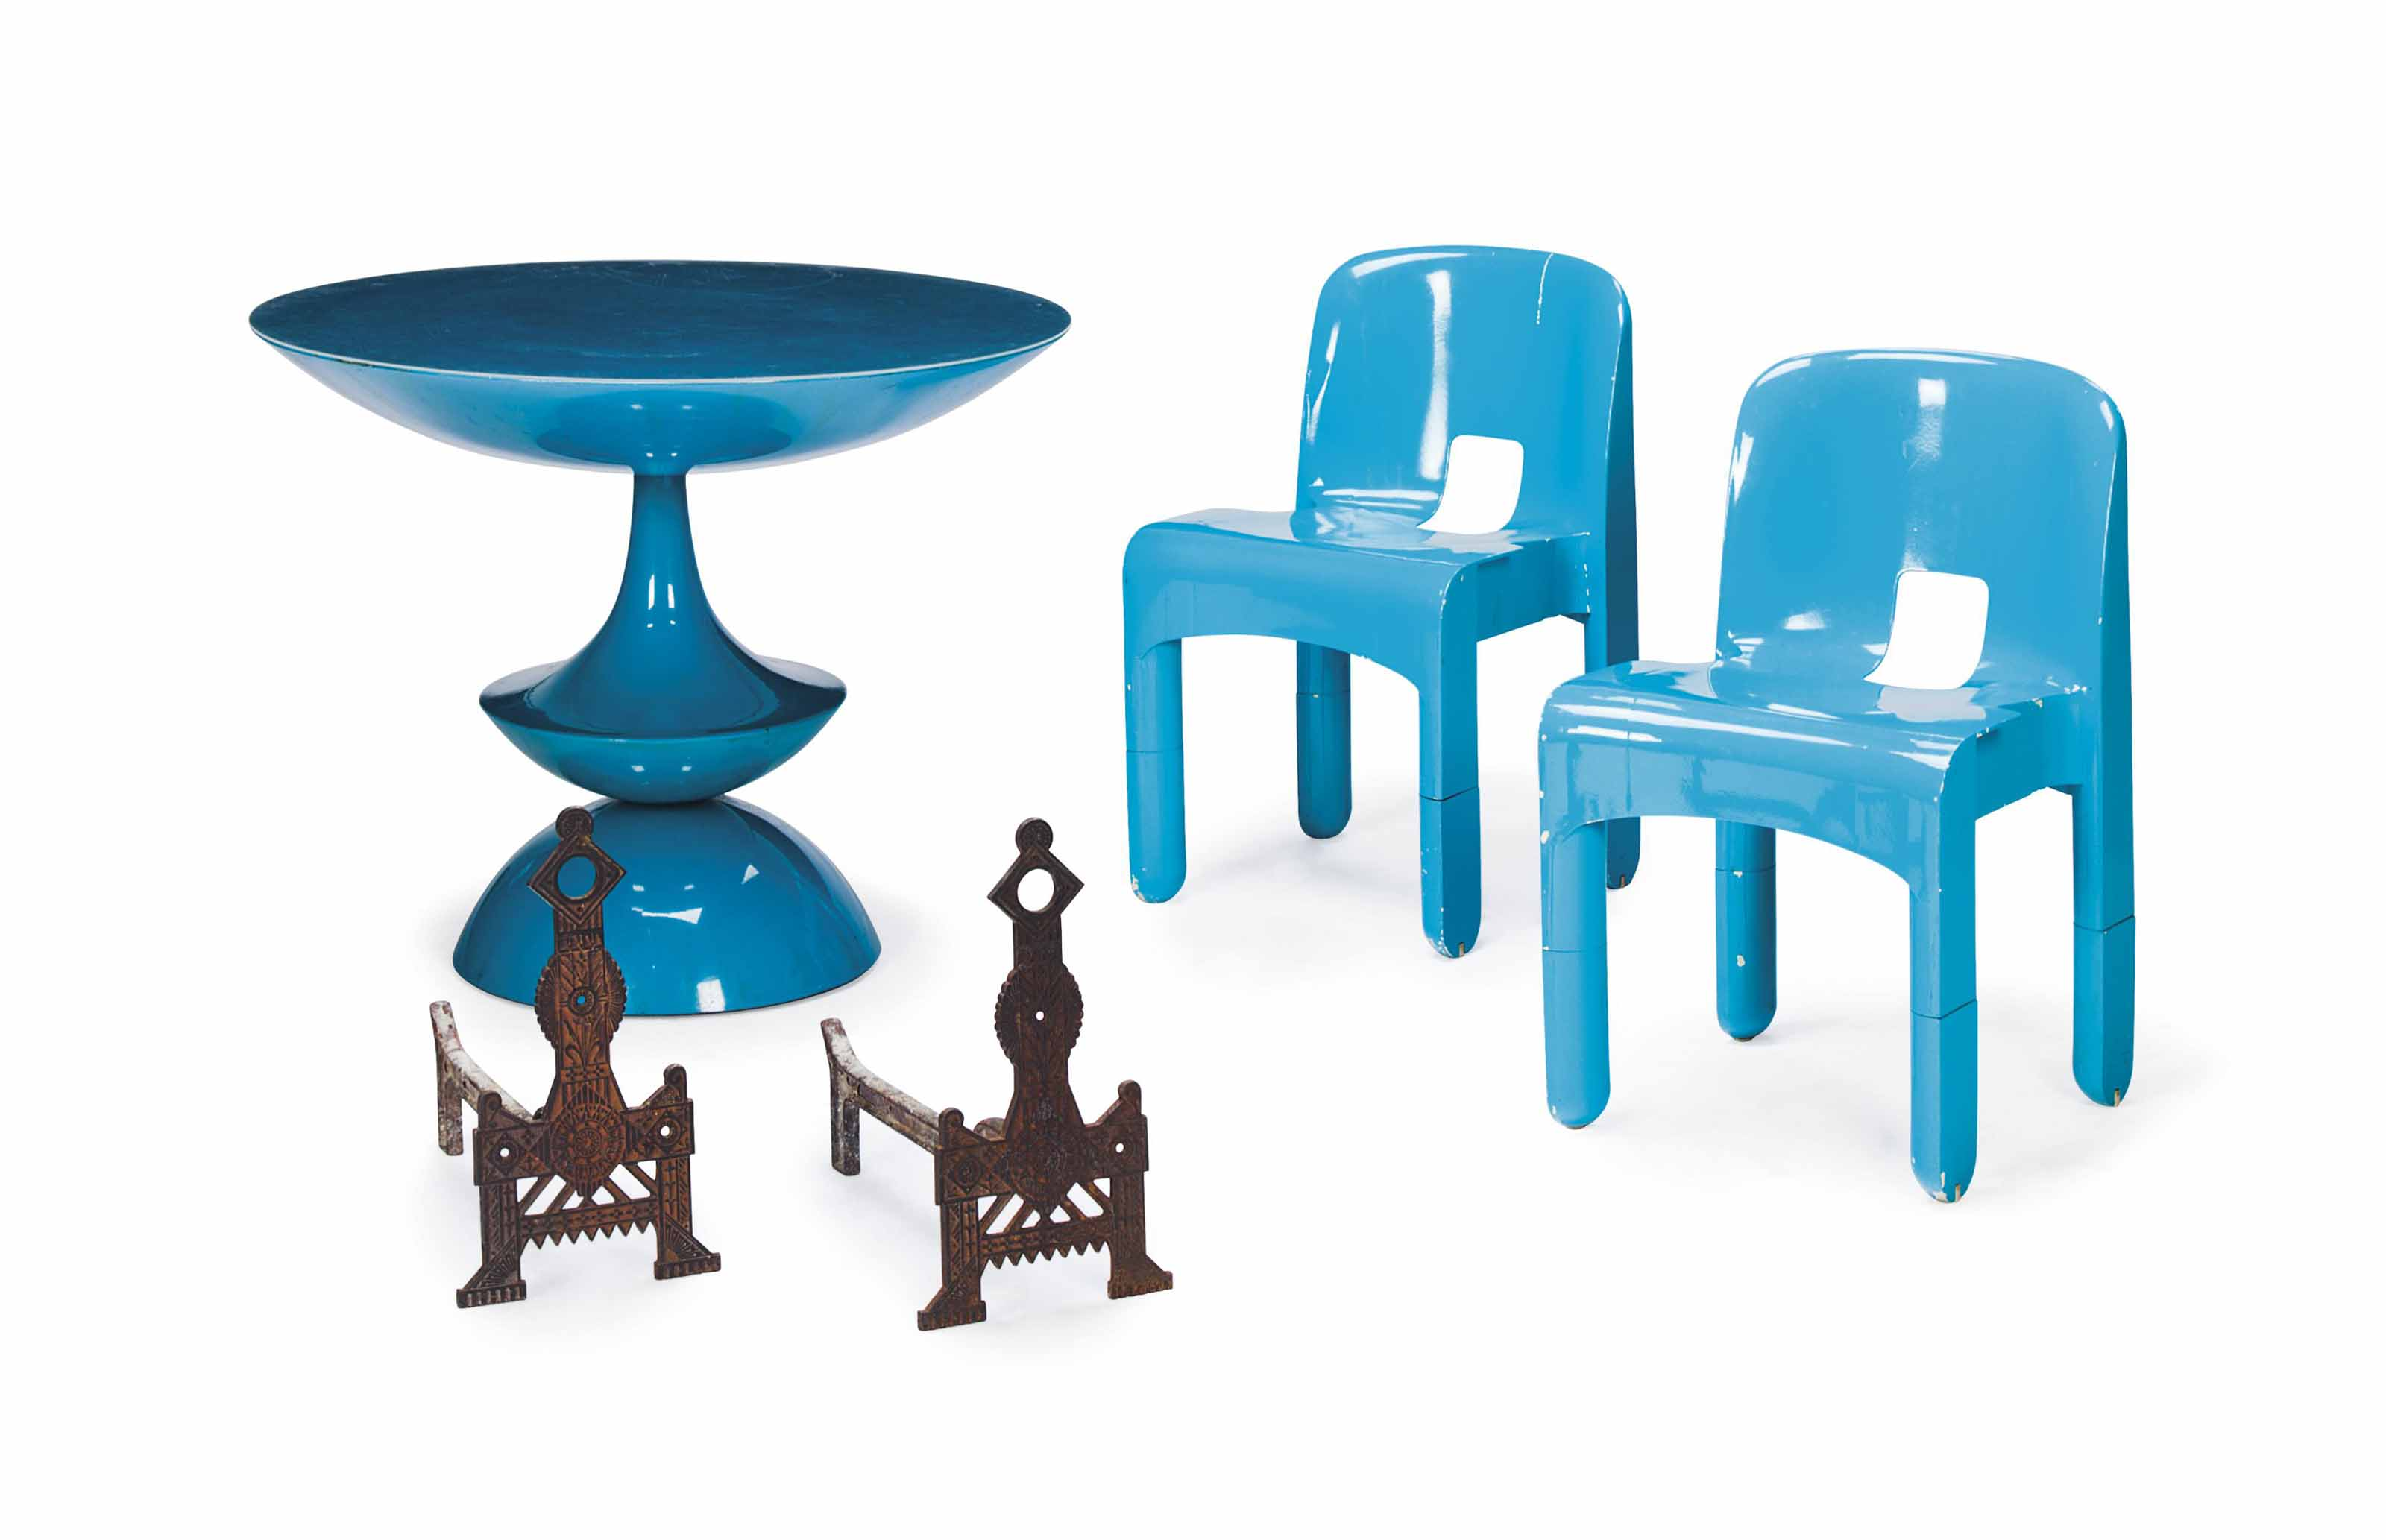 A GROUP OF ENGLISH CAST IRON FIREPLACE EQUIPMENT, AND A TURQUOISE PLASTIC CIRCULAR TABLE AND A PAIR OF TURQUOISE-PAINTED SIDE CHAIRS,